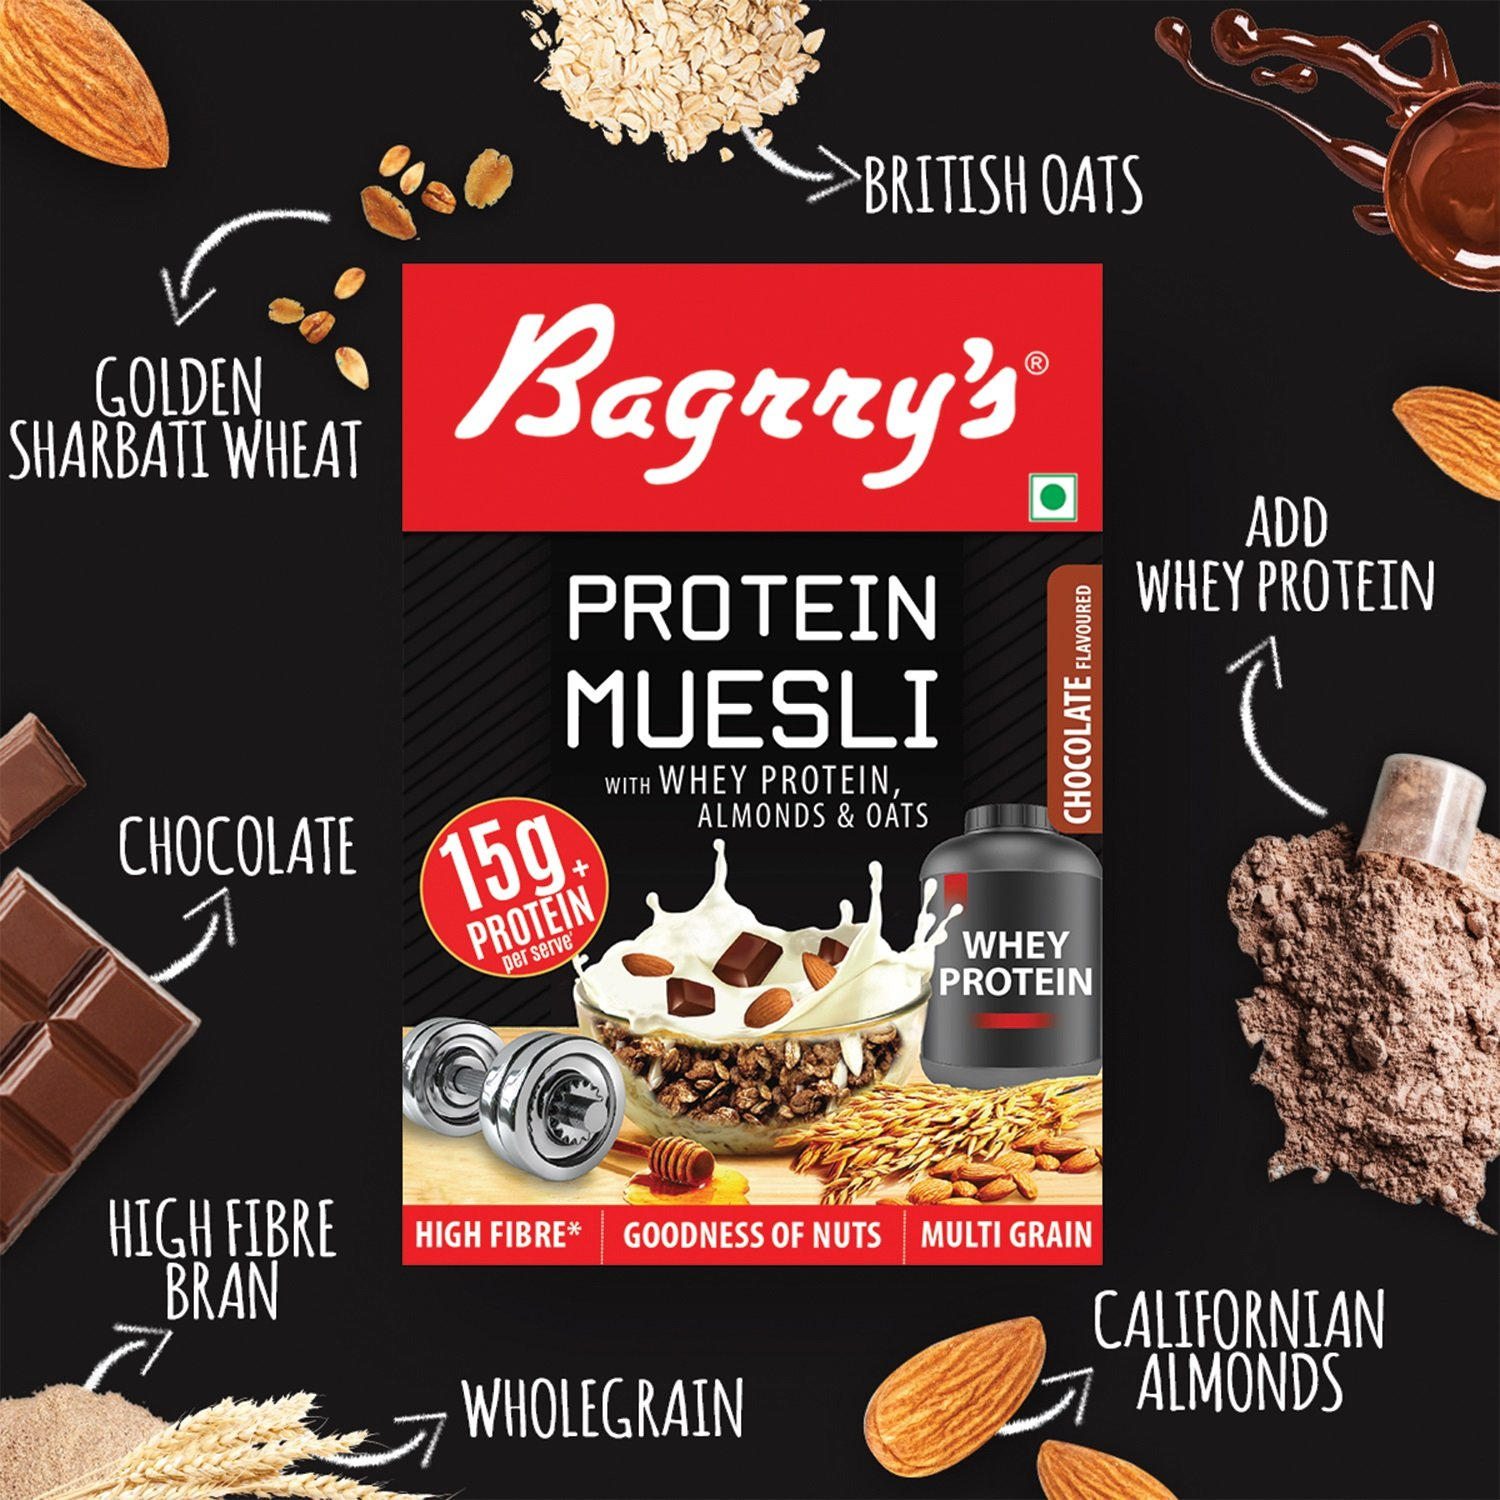 Bagrry's Protein Muesli with Whey Protein, Almonds and Oats